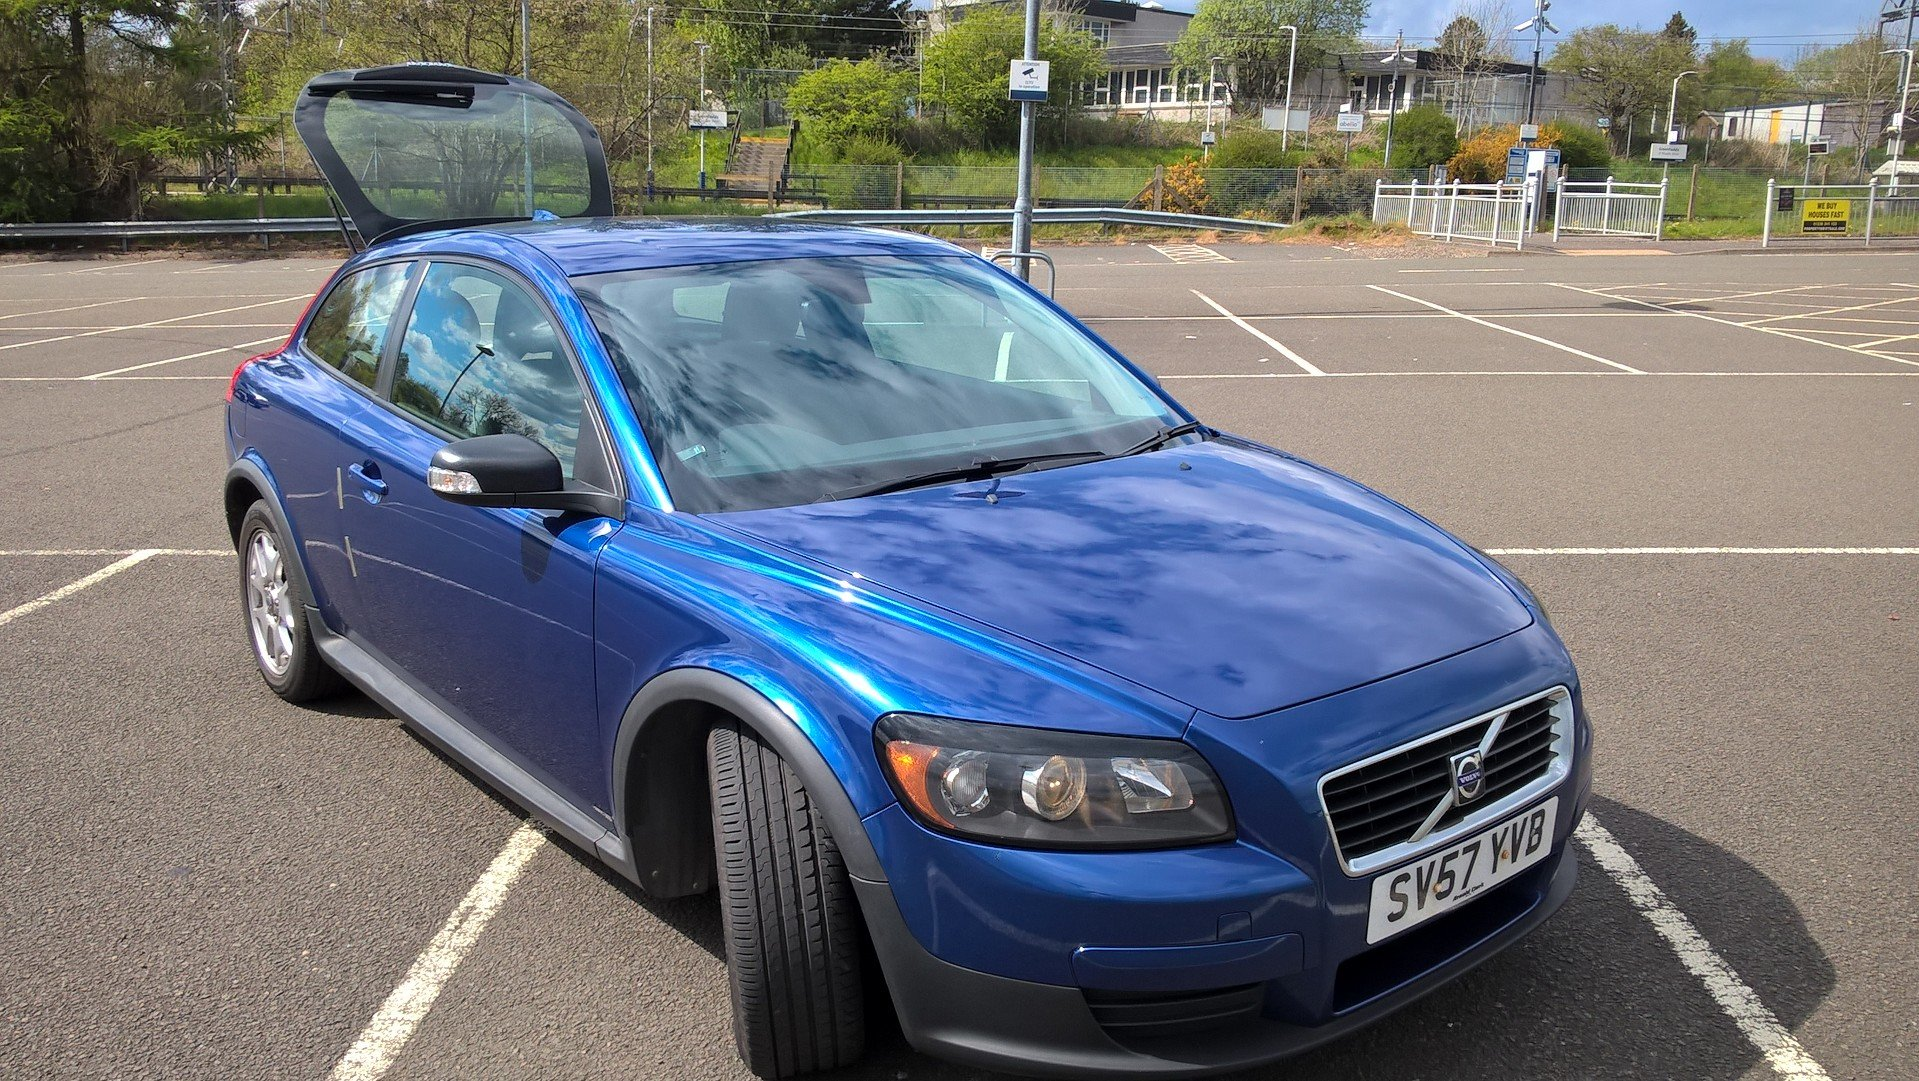 2007 volvo c30 s 2.4 automatic For Sale (picture 3 of 6)